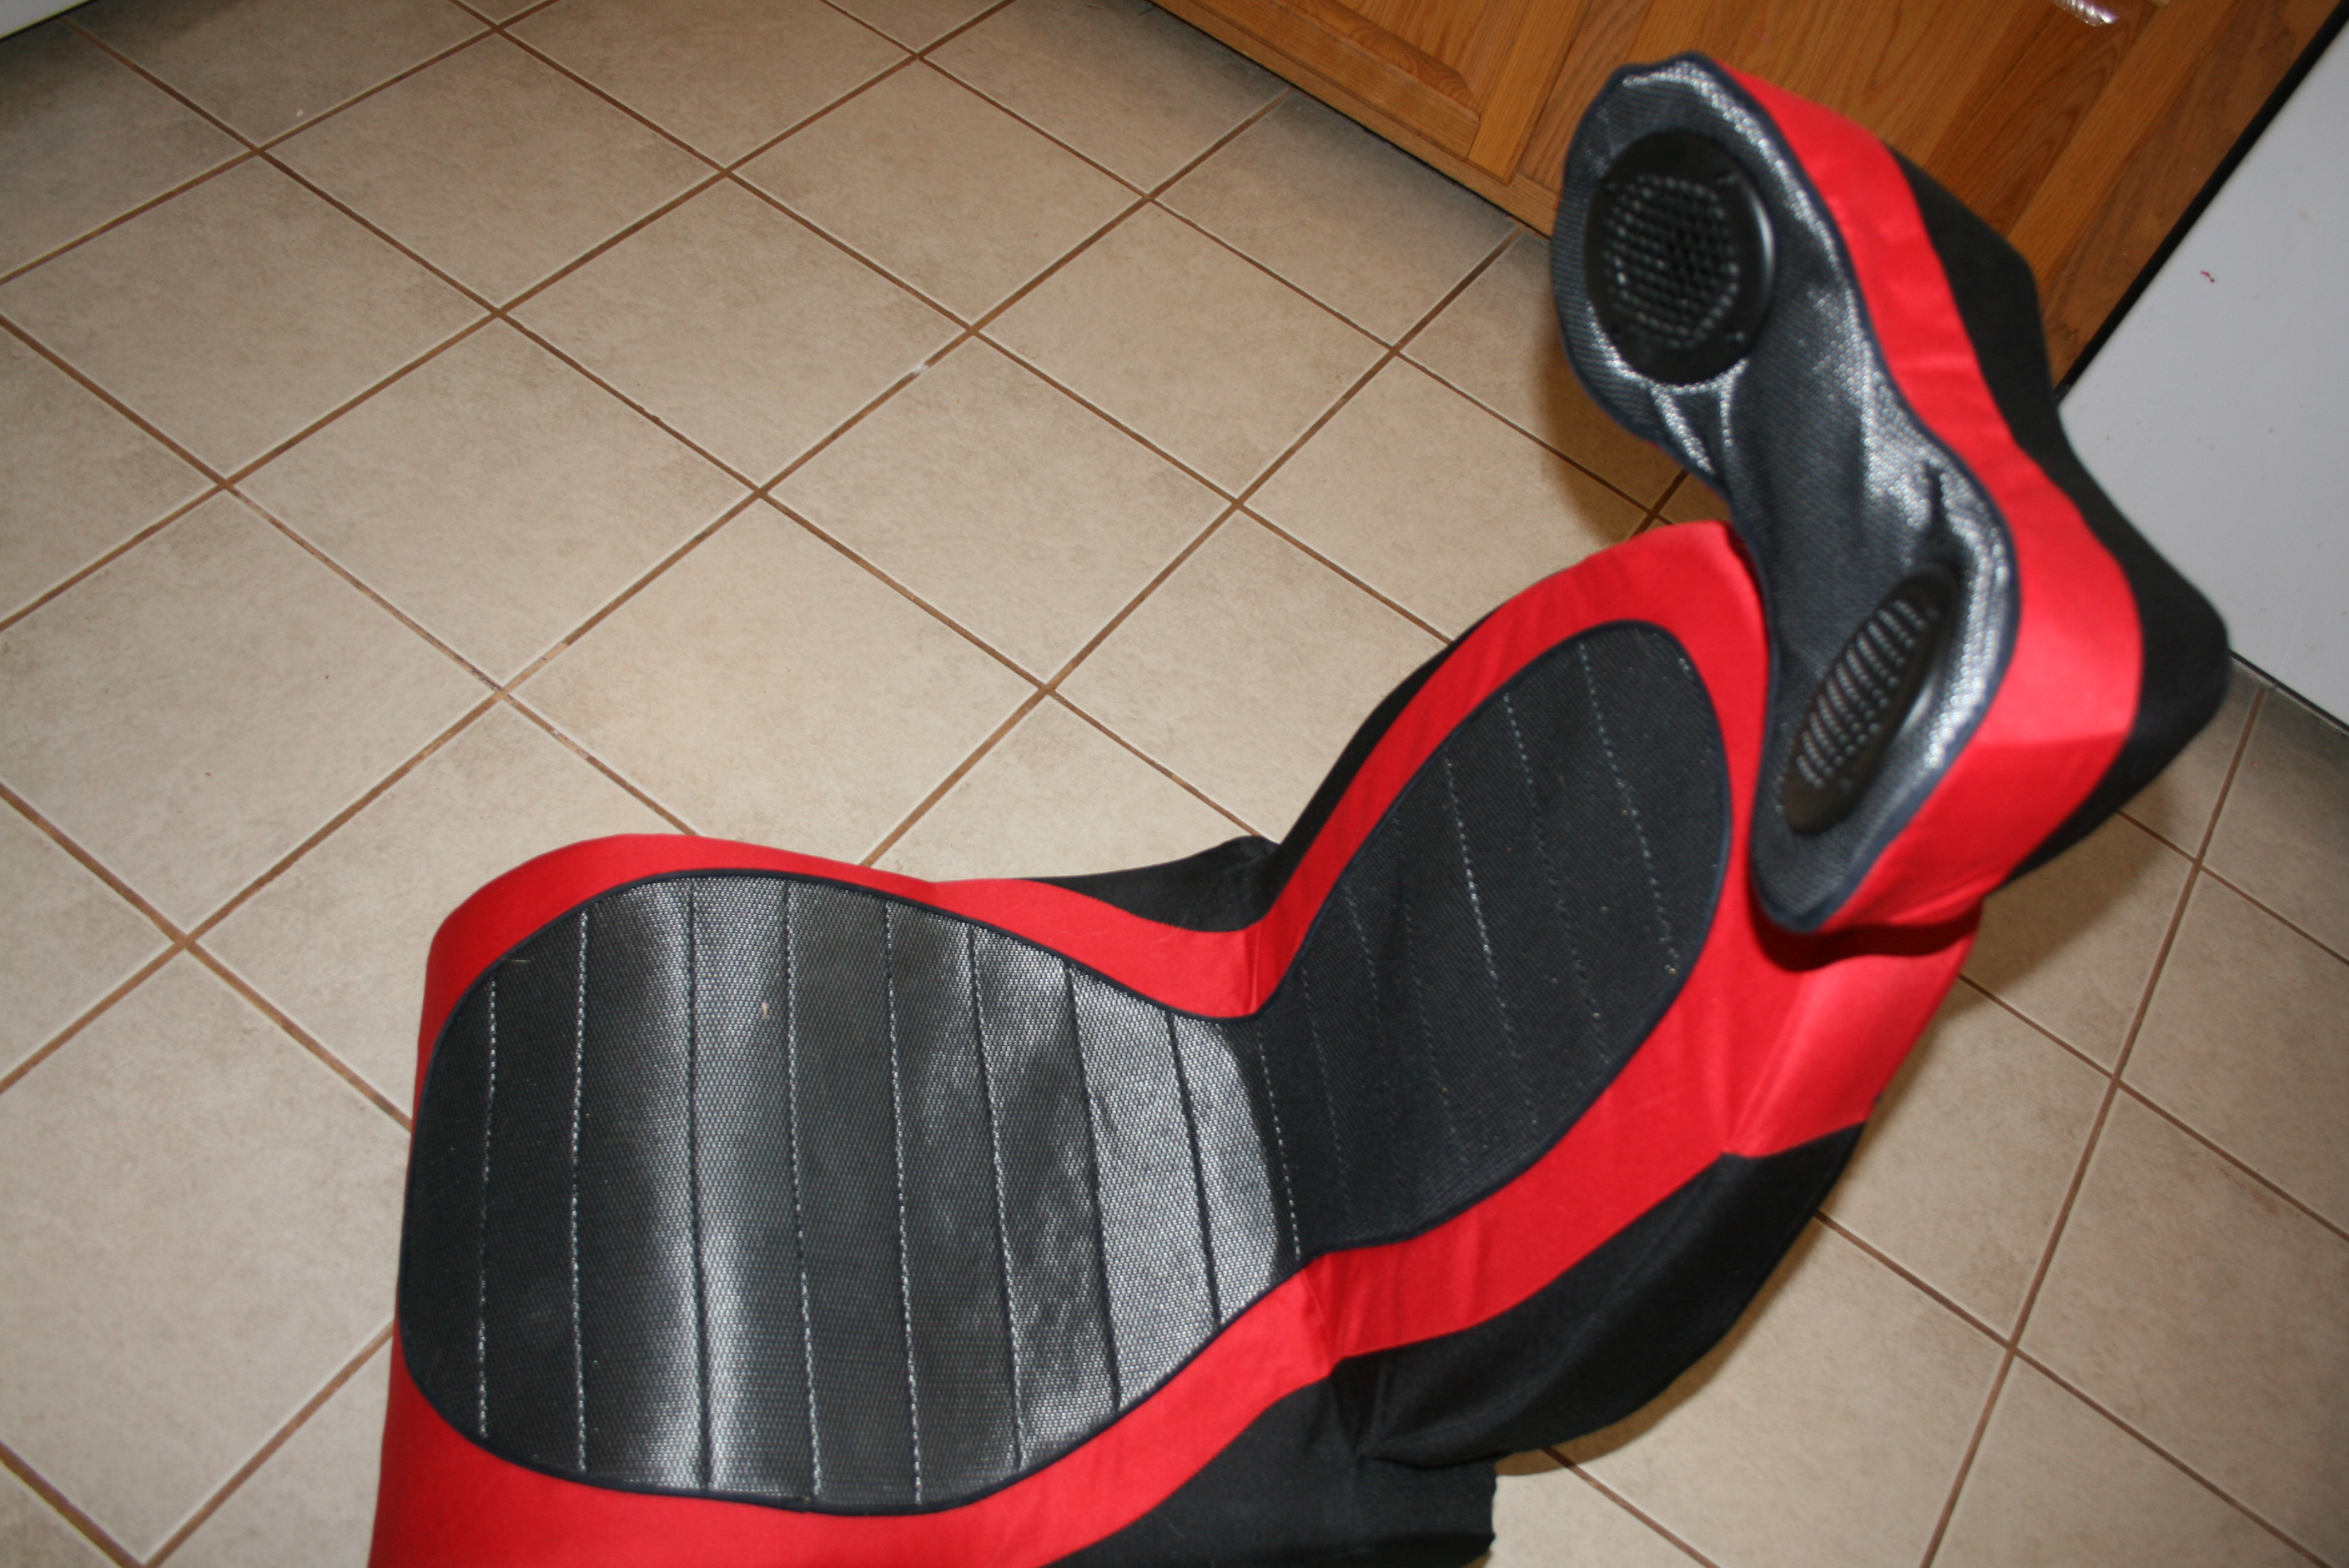 Pulse BoomChair Gaming Chair